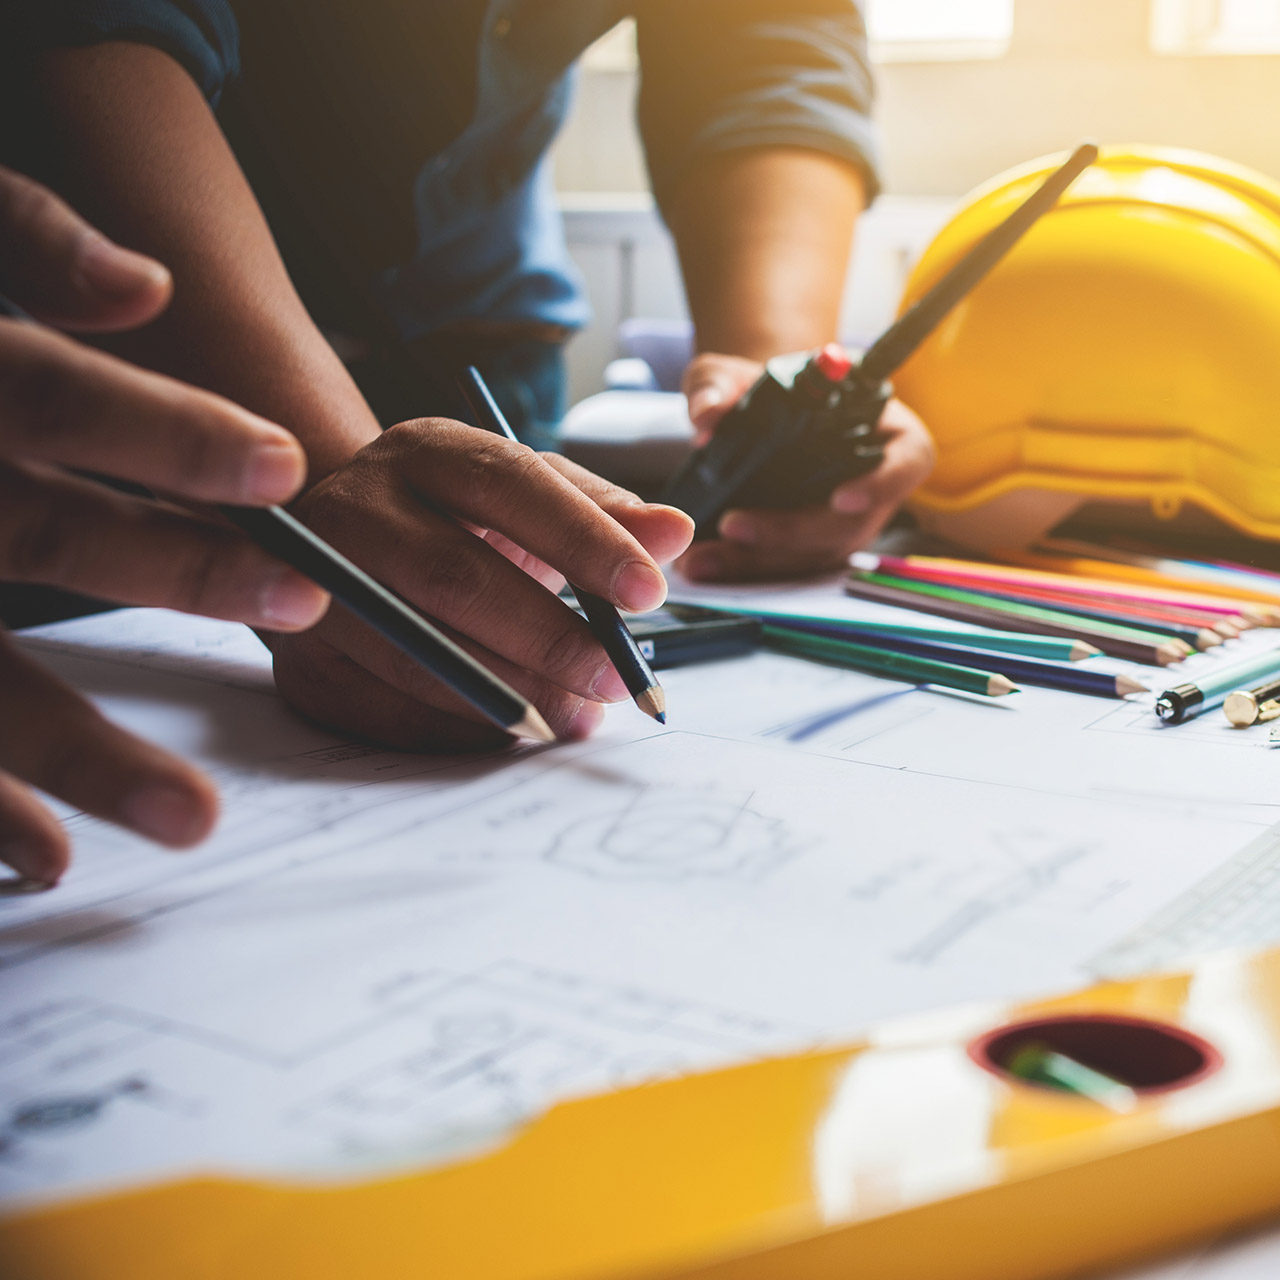 JOB QUOTES & MATERIAL PLANNING FOR CONSTRUCTION